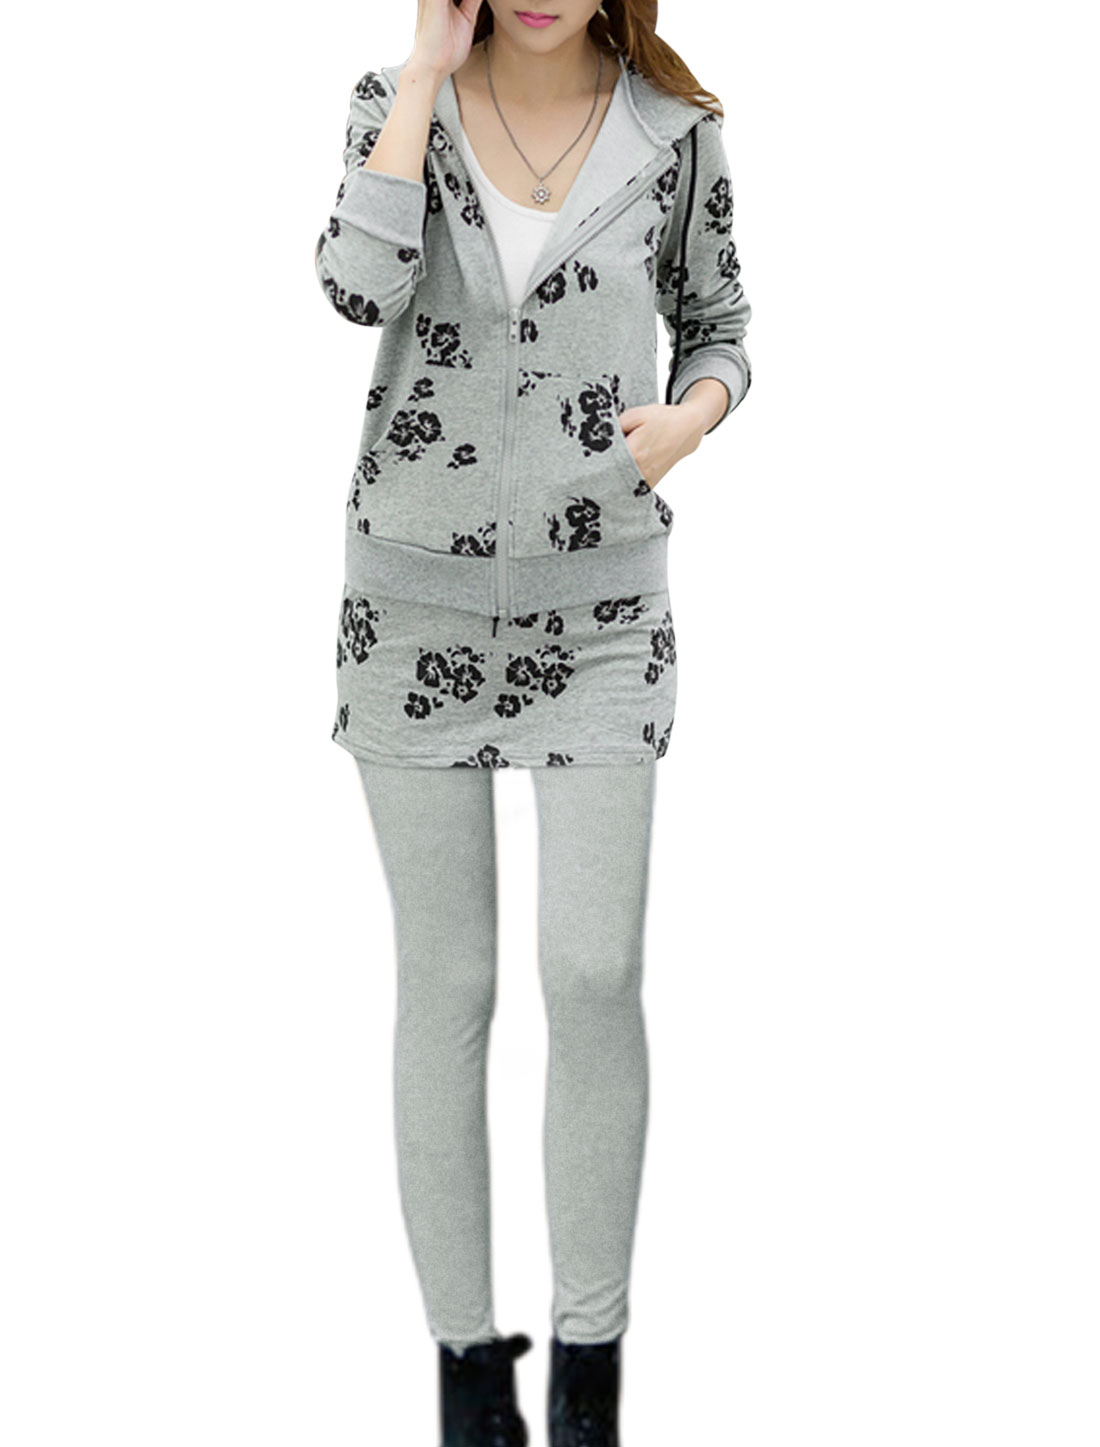 Lady Flower Prints Hooded Jacket w Stretchy Skirt Leggings Sets Light Gray XS